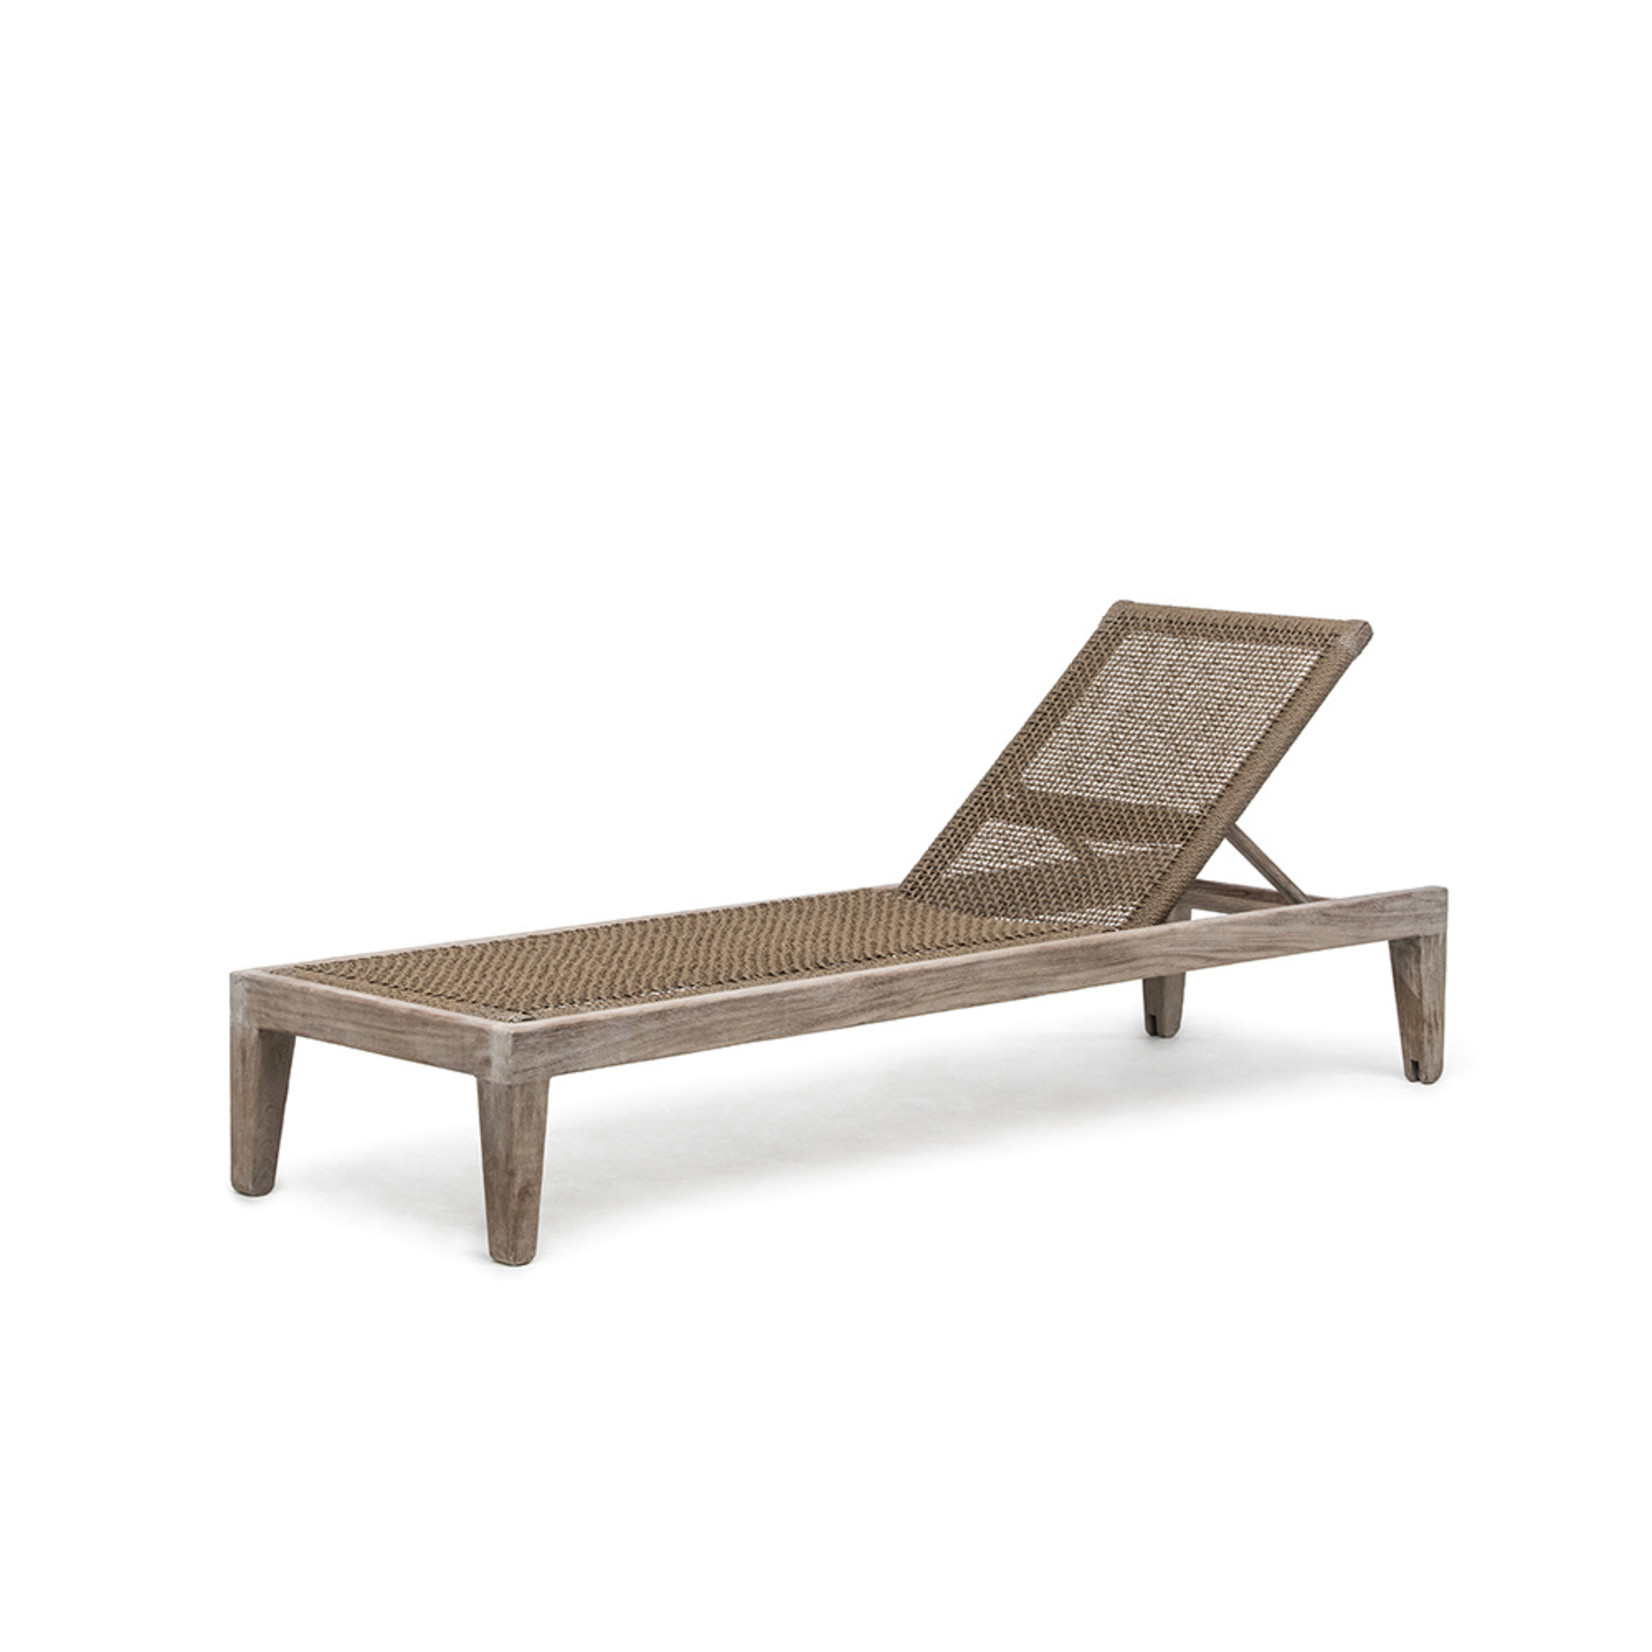 Gommaire Sunlounger Lisa incl. Wheels   Reclaimed Teak Natural Grey & PE Wicker Antique Weed + Cushion